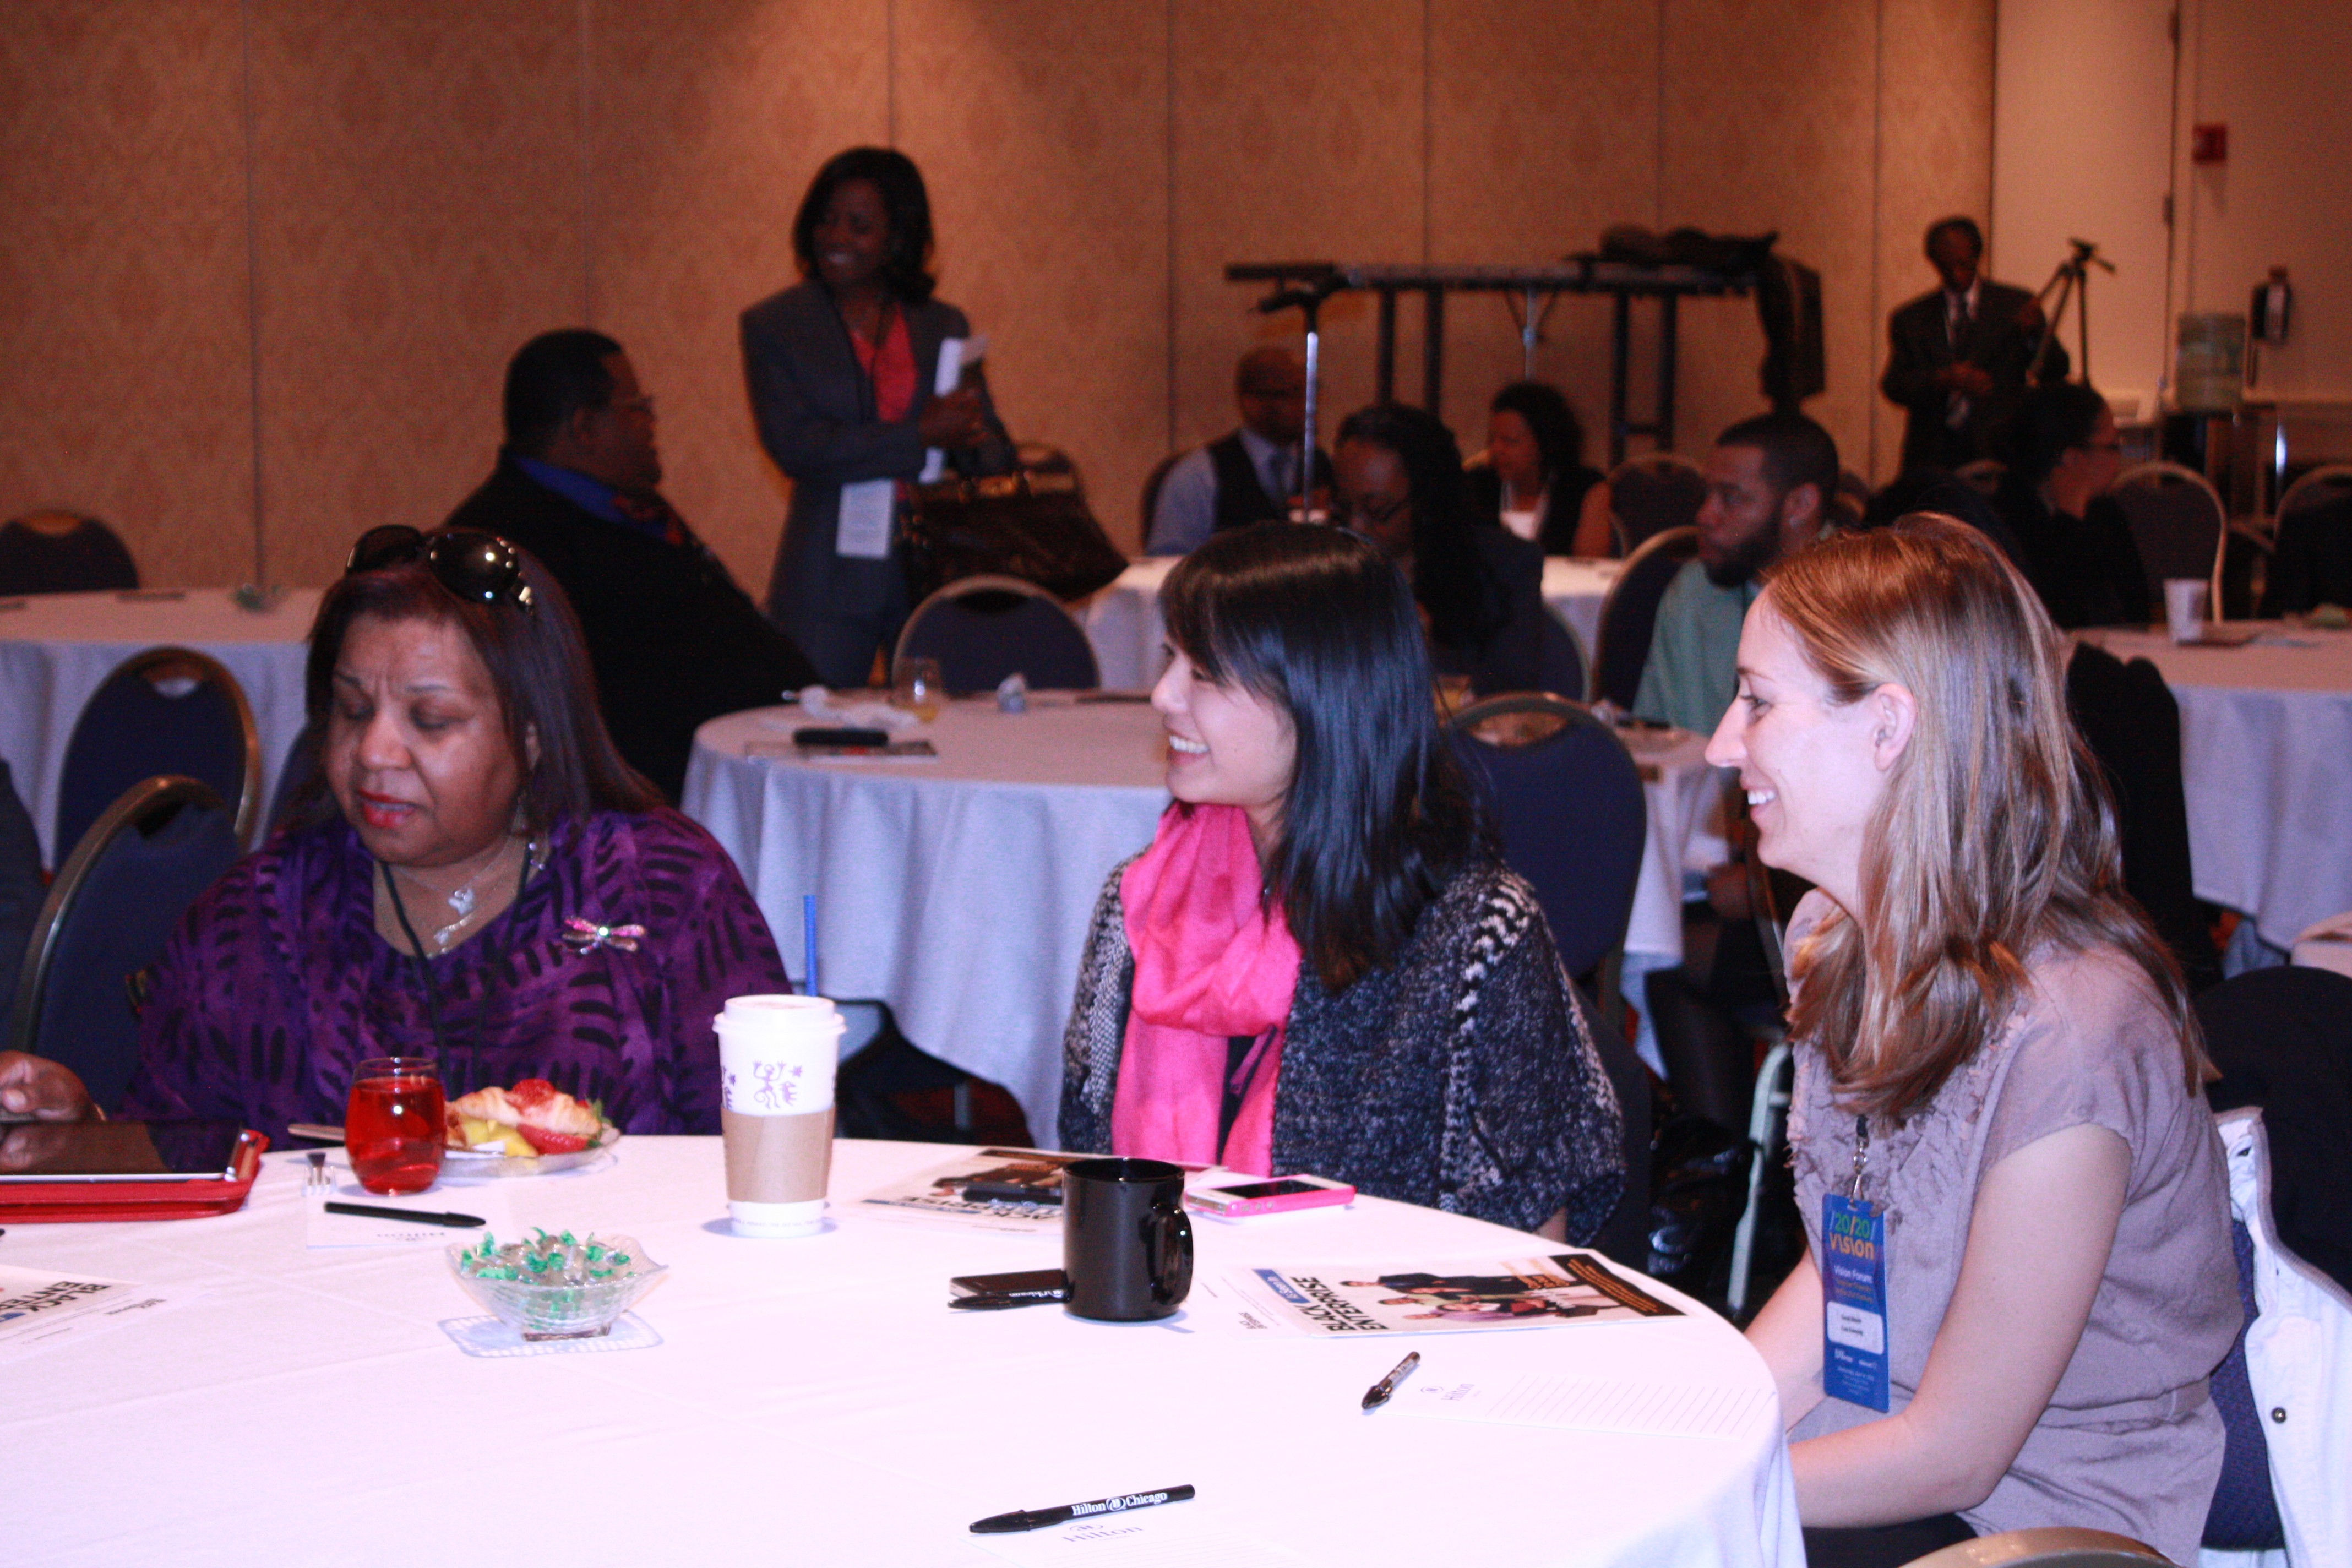 There were people representing a diversity of industries and ethnicities at the Black Enterprise Vision 20/20 Forum about Supplier Diversity in the 21st Century.